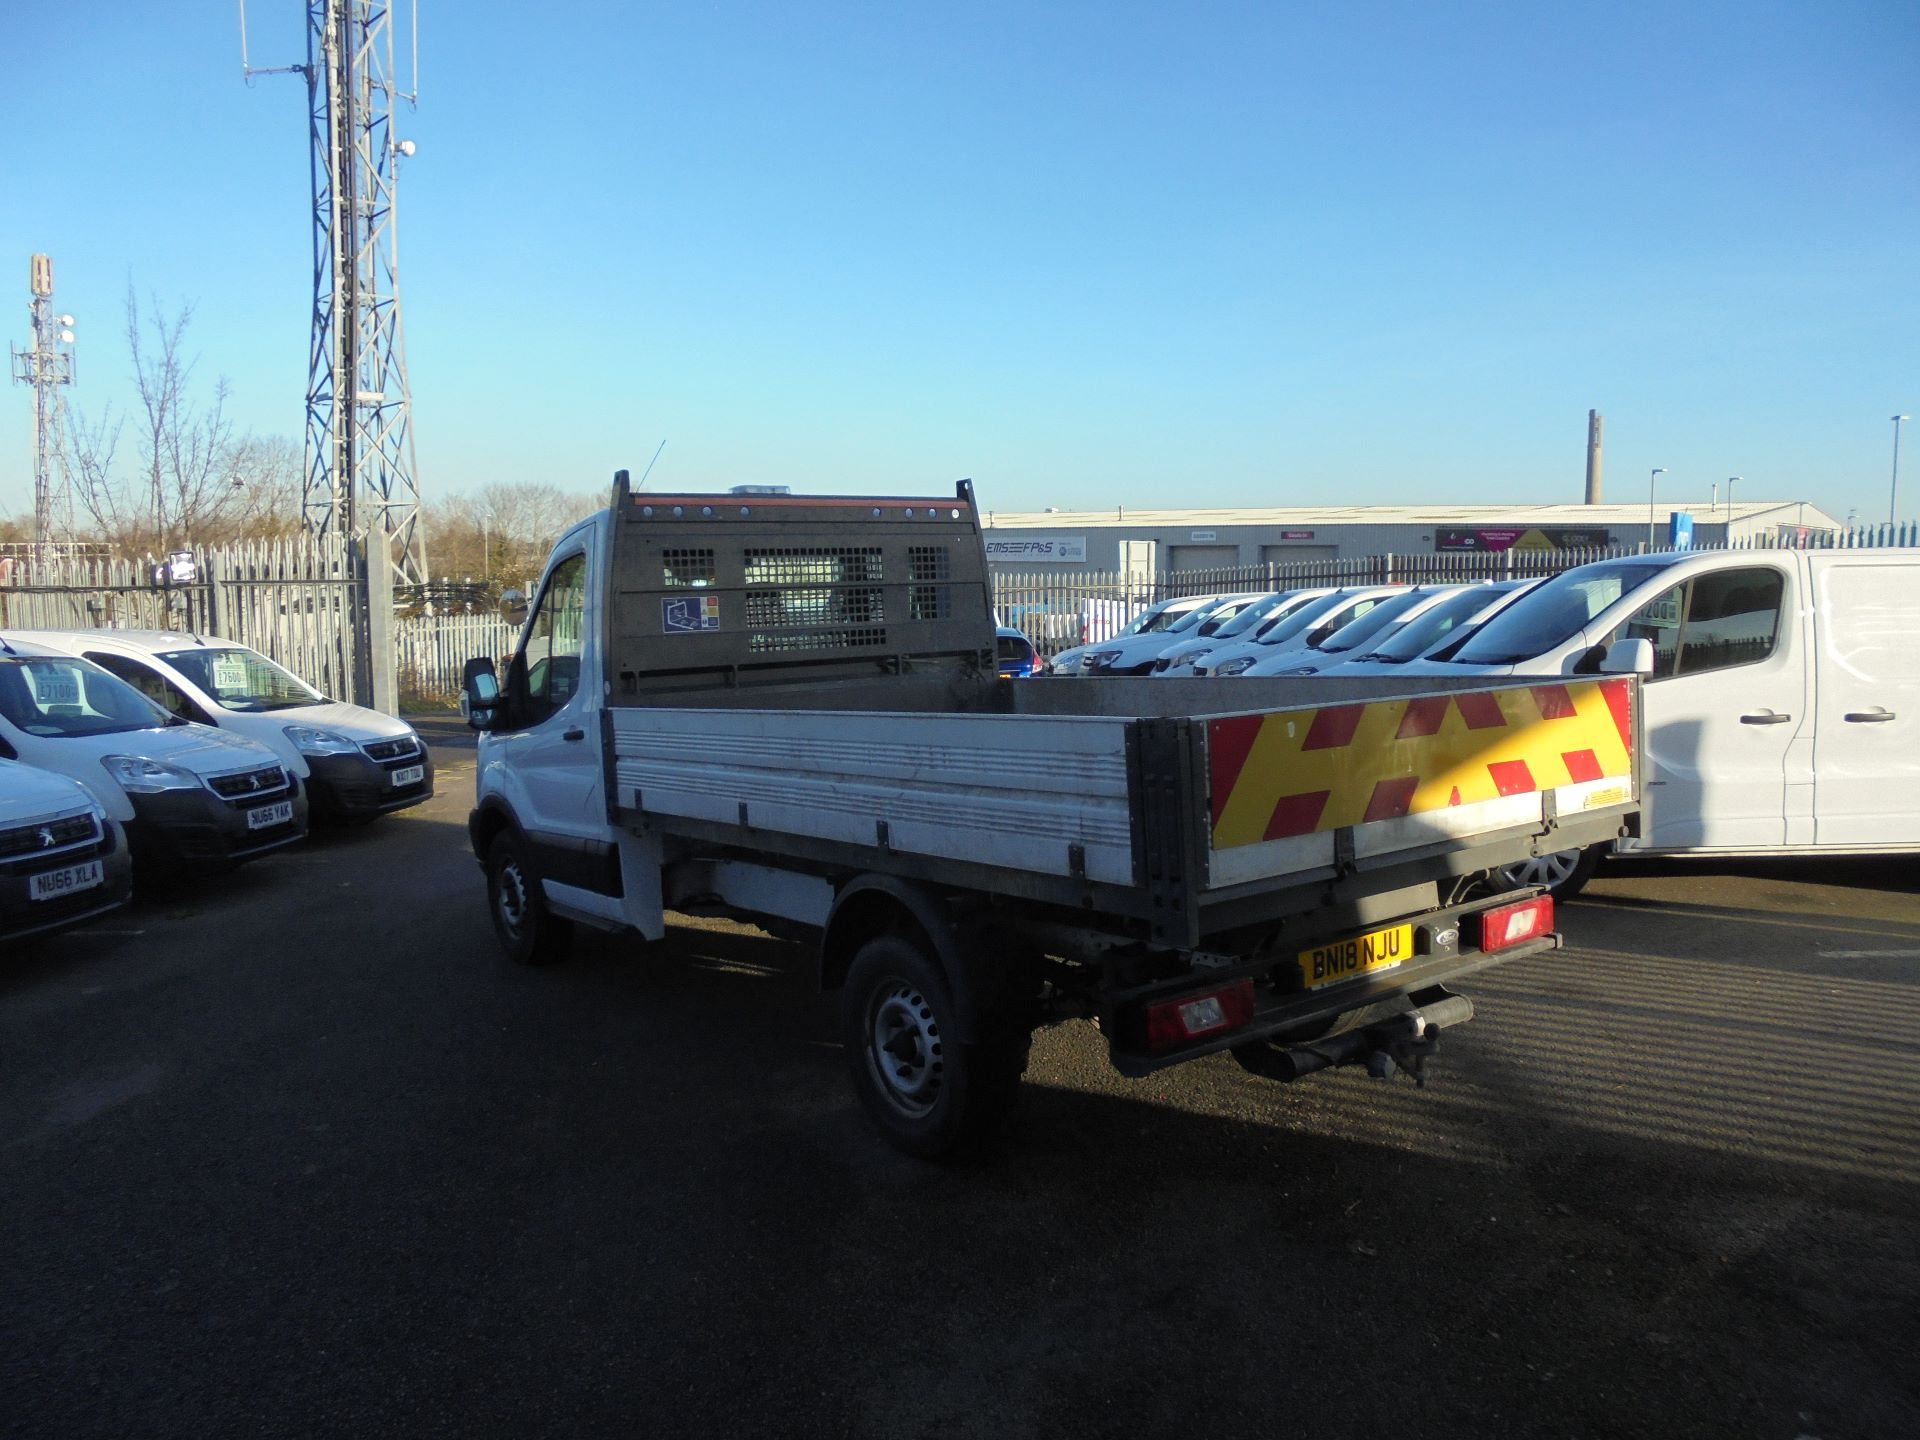 2018 Ford Transit 350 L2 SINGLE CAB TIPPER 130PS EURO 6 (BN18NJU) Image 7